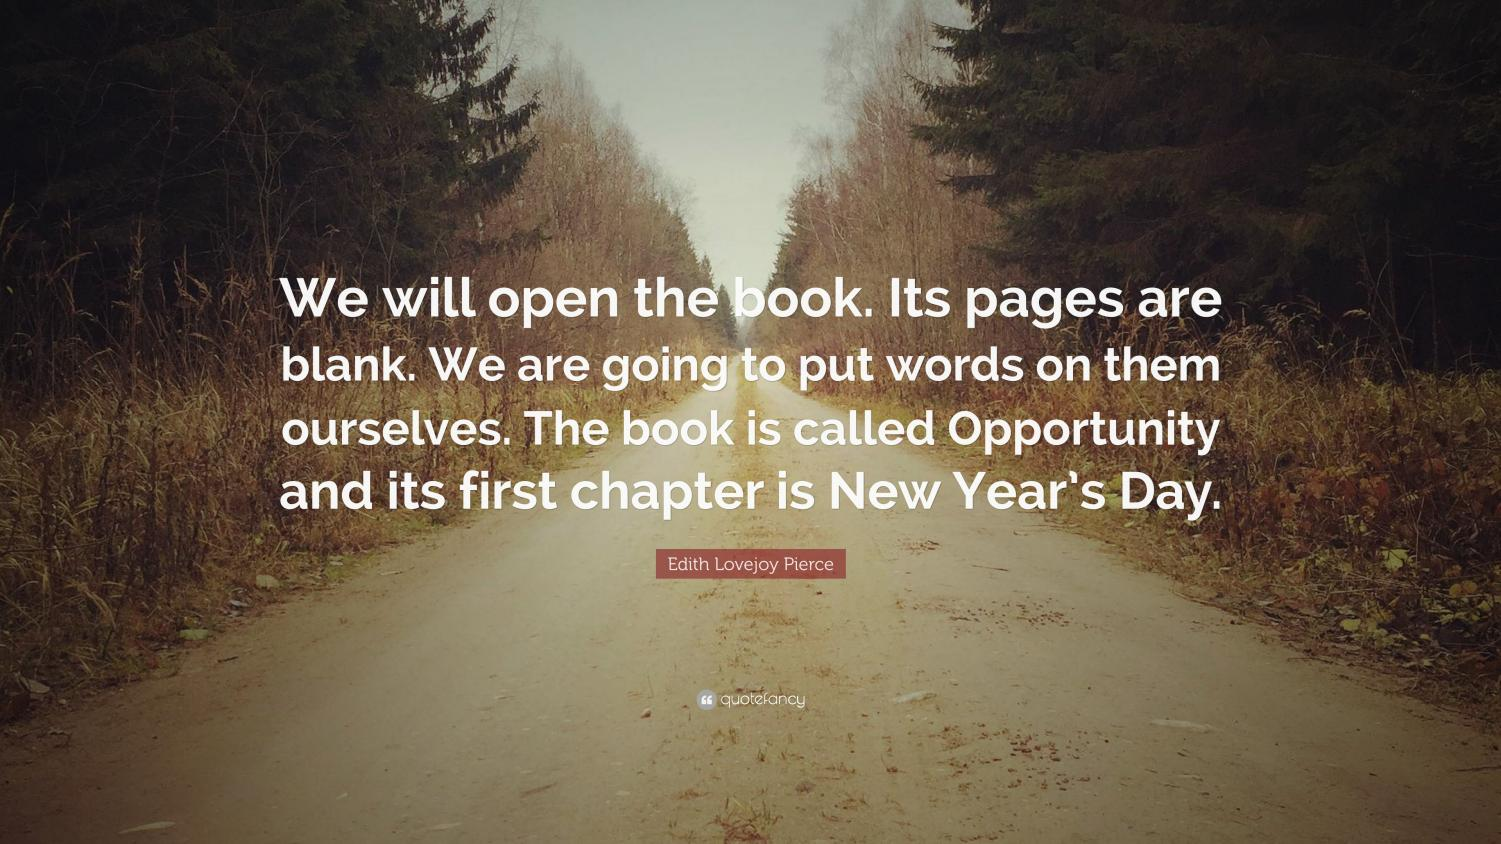 Photo Credit- https://quotefancy.com/quote/26088/Edith-Lovejoy-Pierce-We-will-open-the-book-Its-pages-are-blank-We-are-going-to-put-words